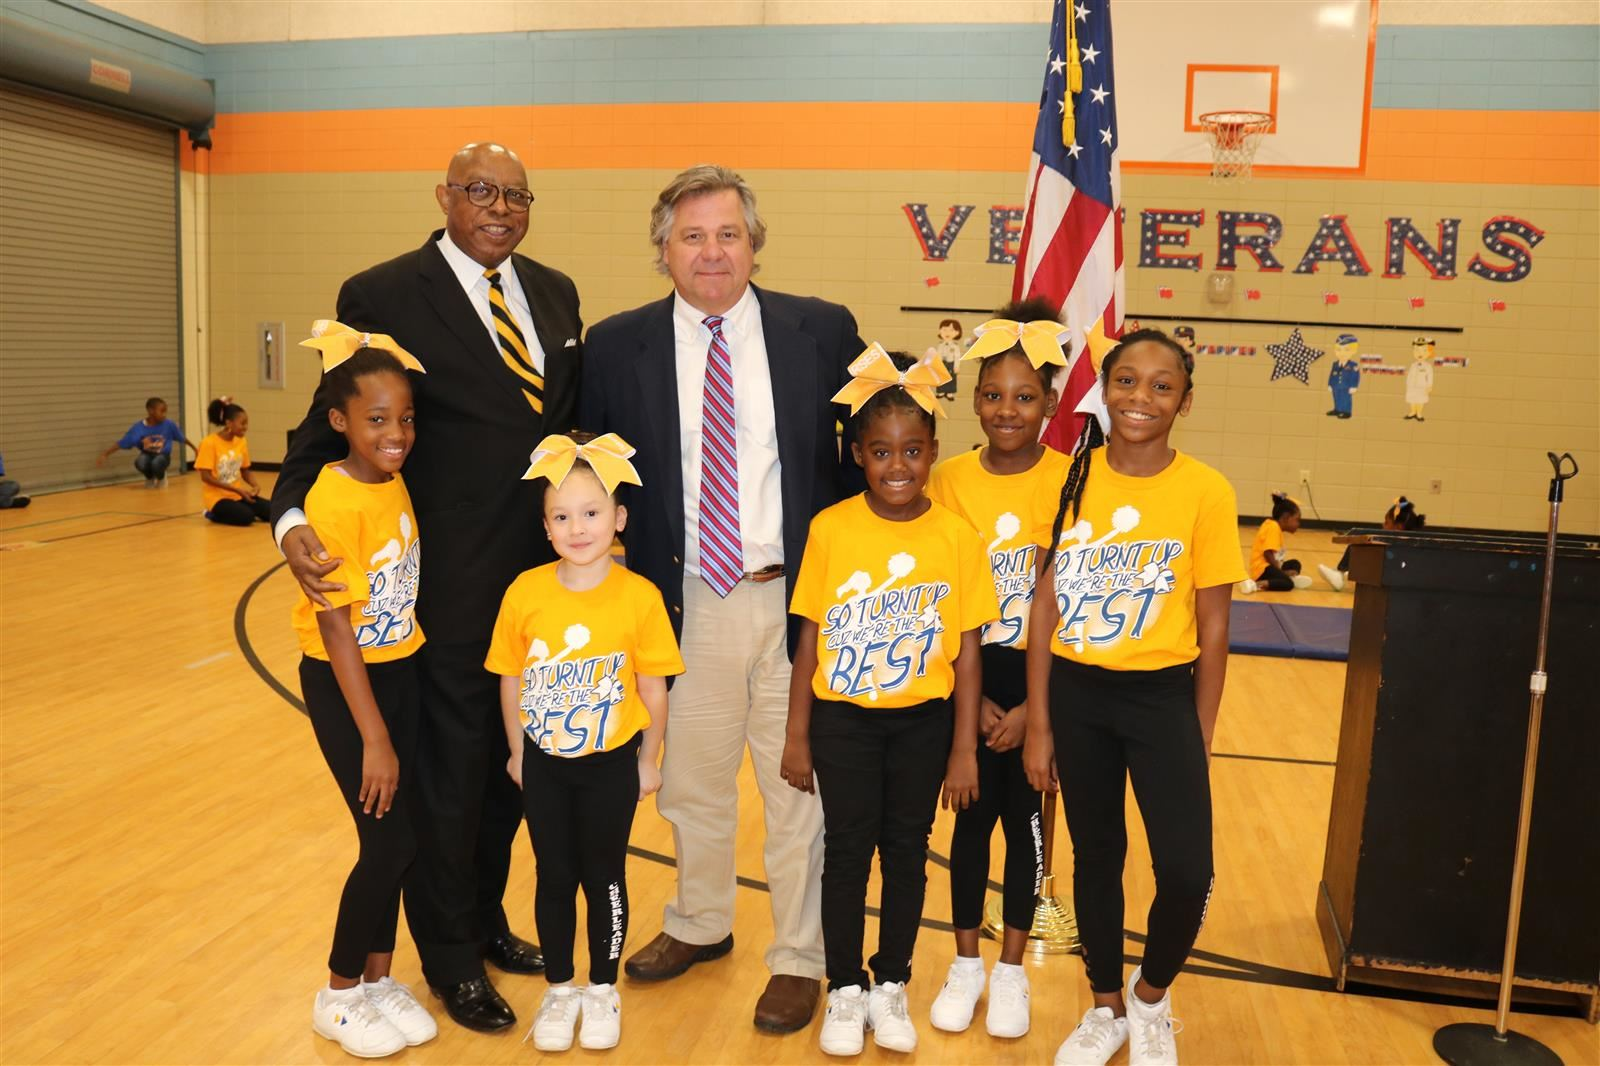 Rev. James Bush stands with Principal Bruce Bowles and students